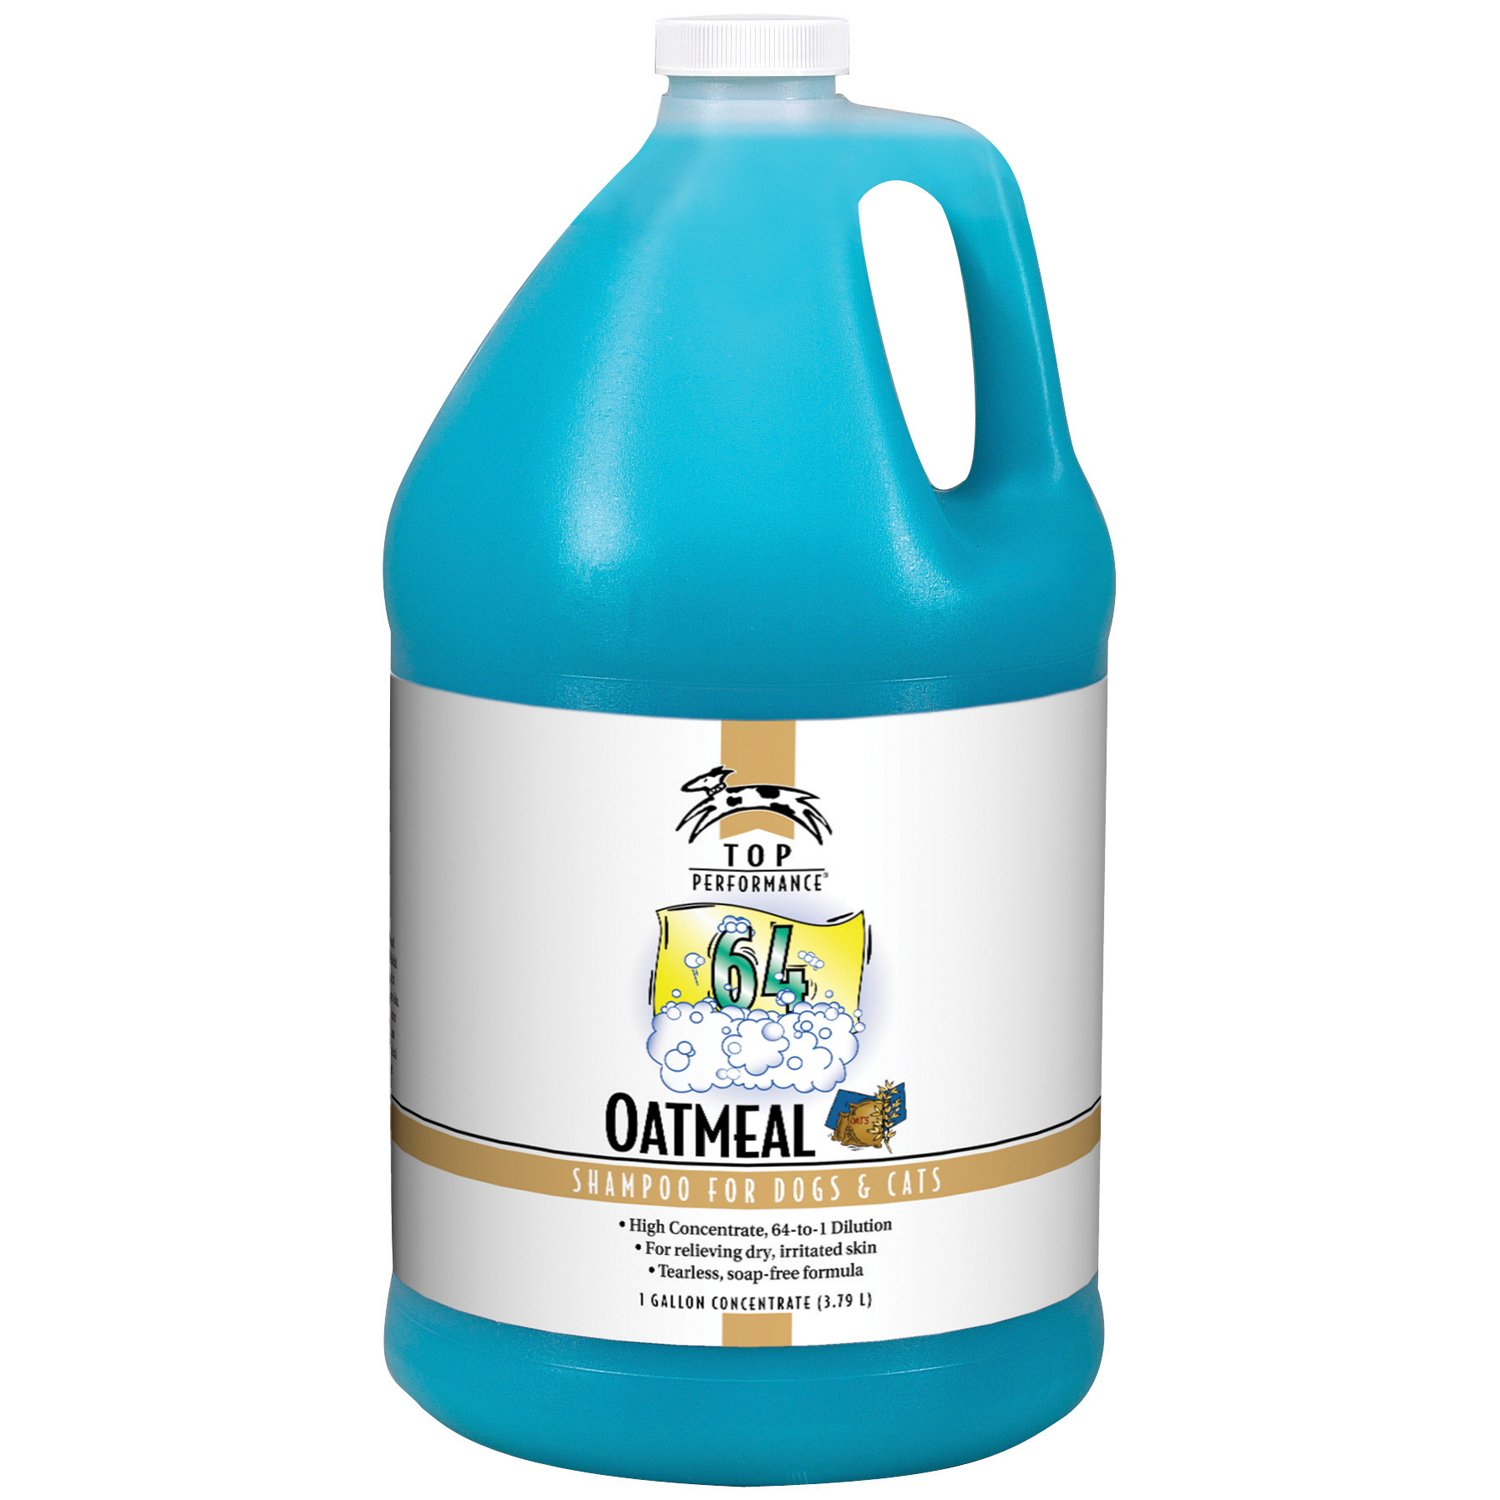 Top Performance TP 64 Pet Shampoo, Oatmeal by Top Performance